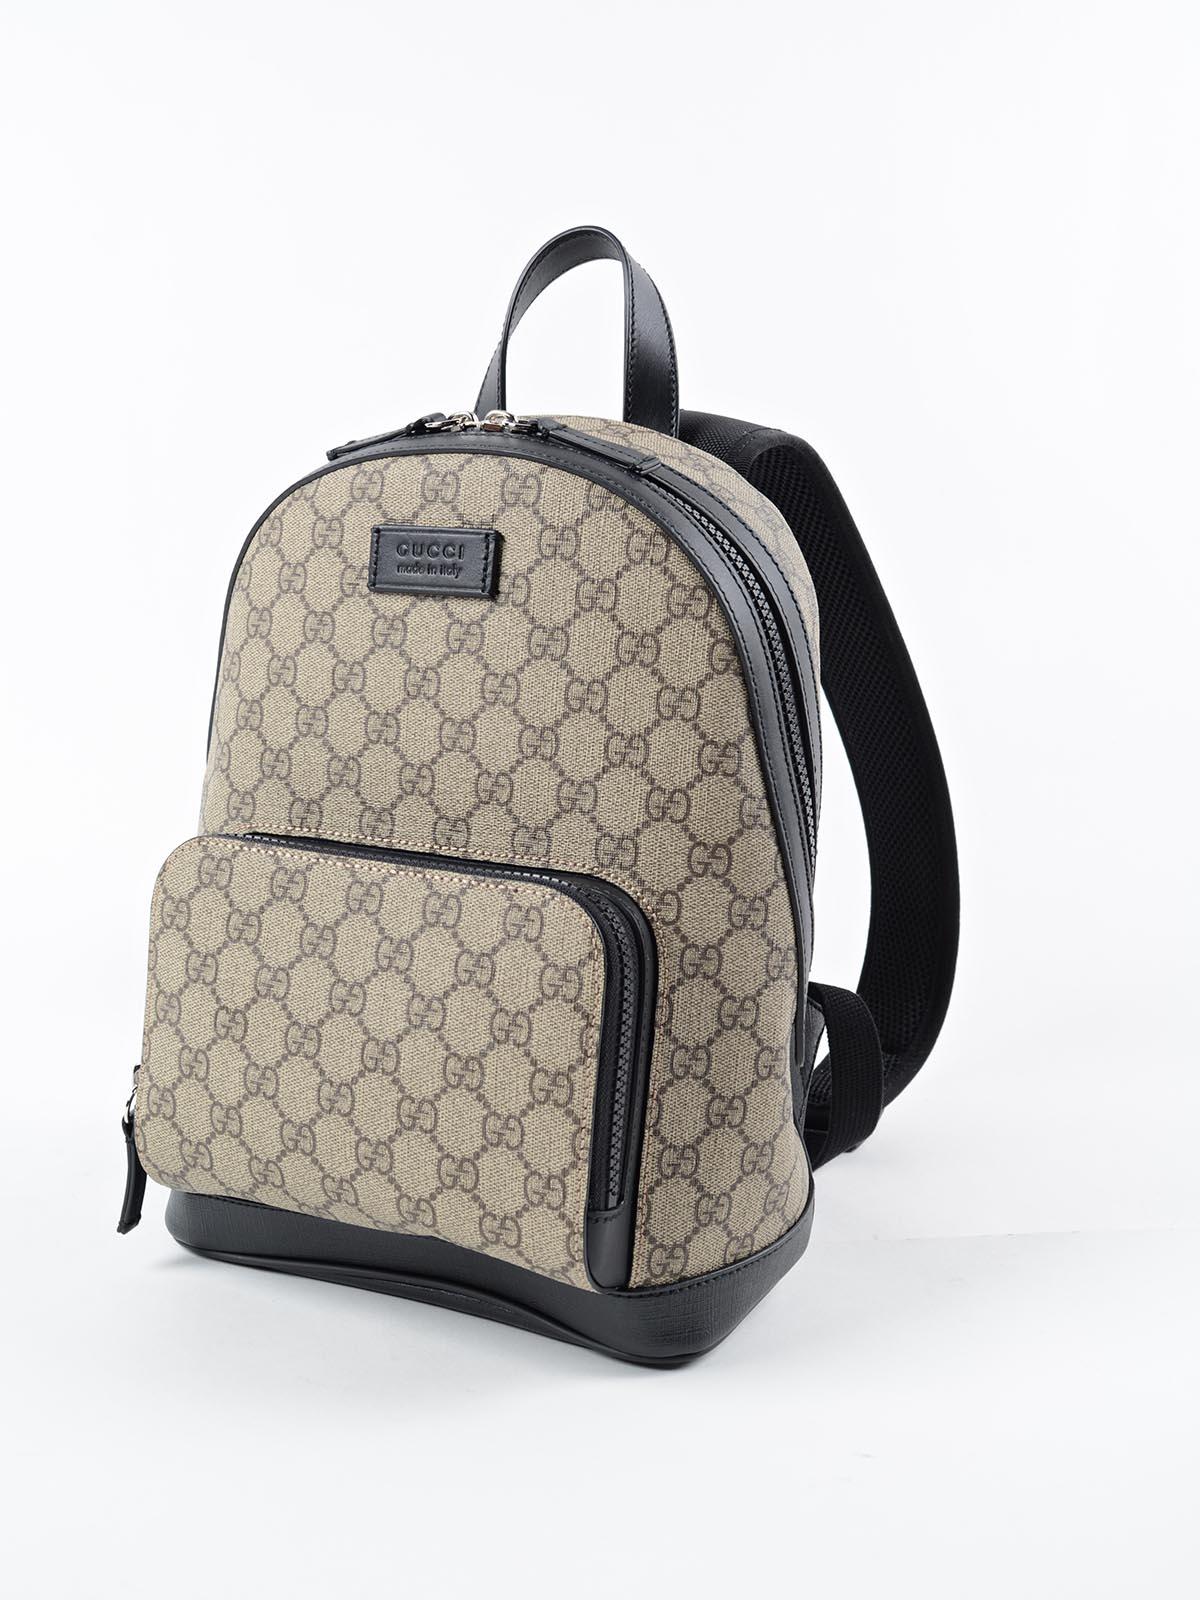 Picture of Gucci | Gg Supreme Backpack